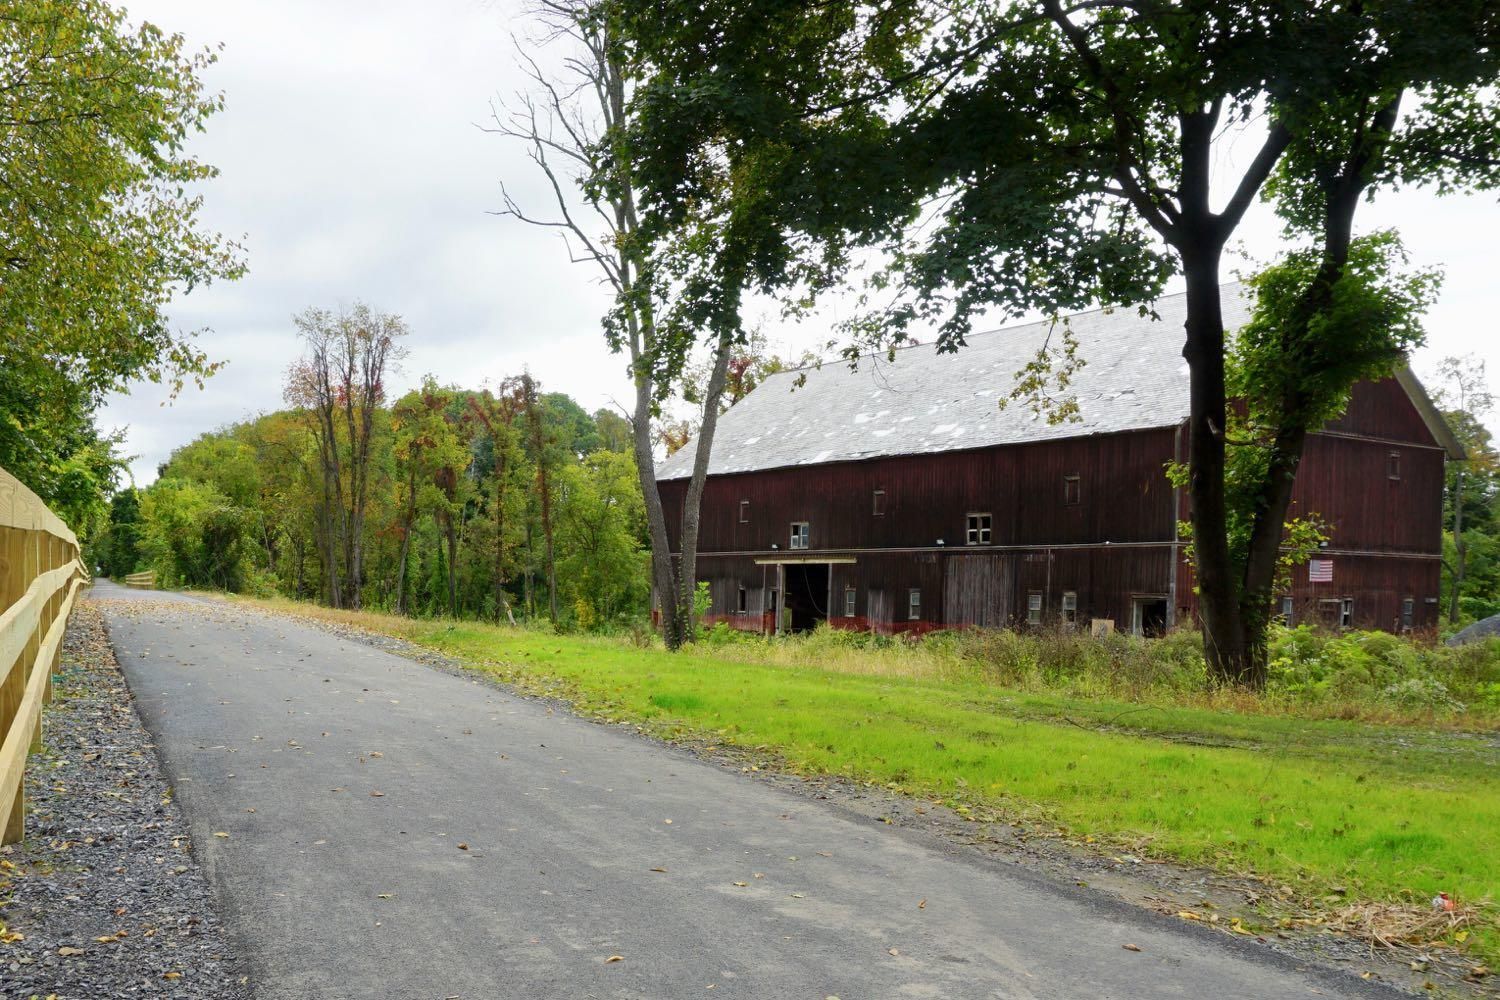 Hilton Barn by rail trail 2018-October  v2